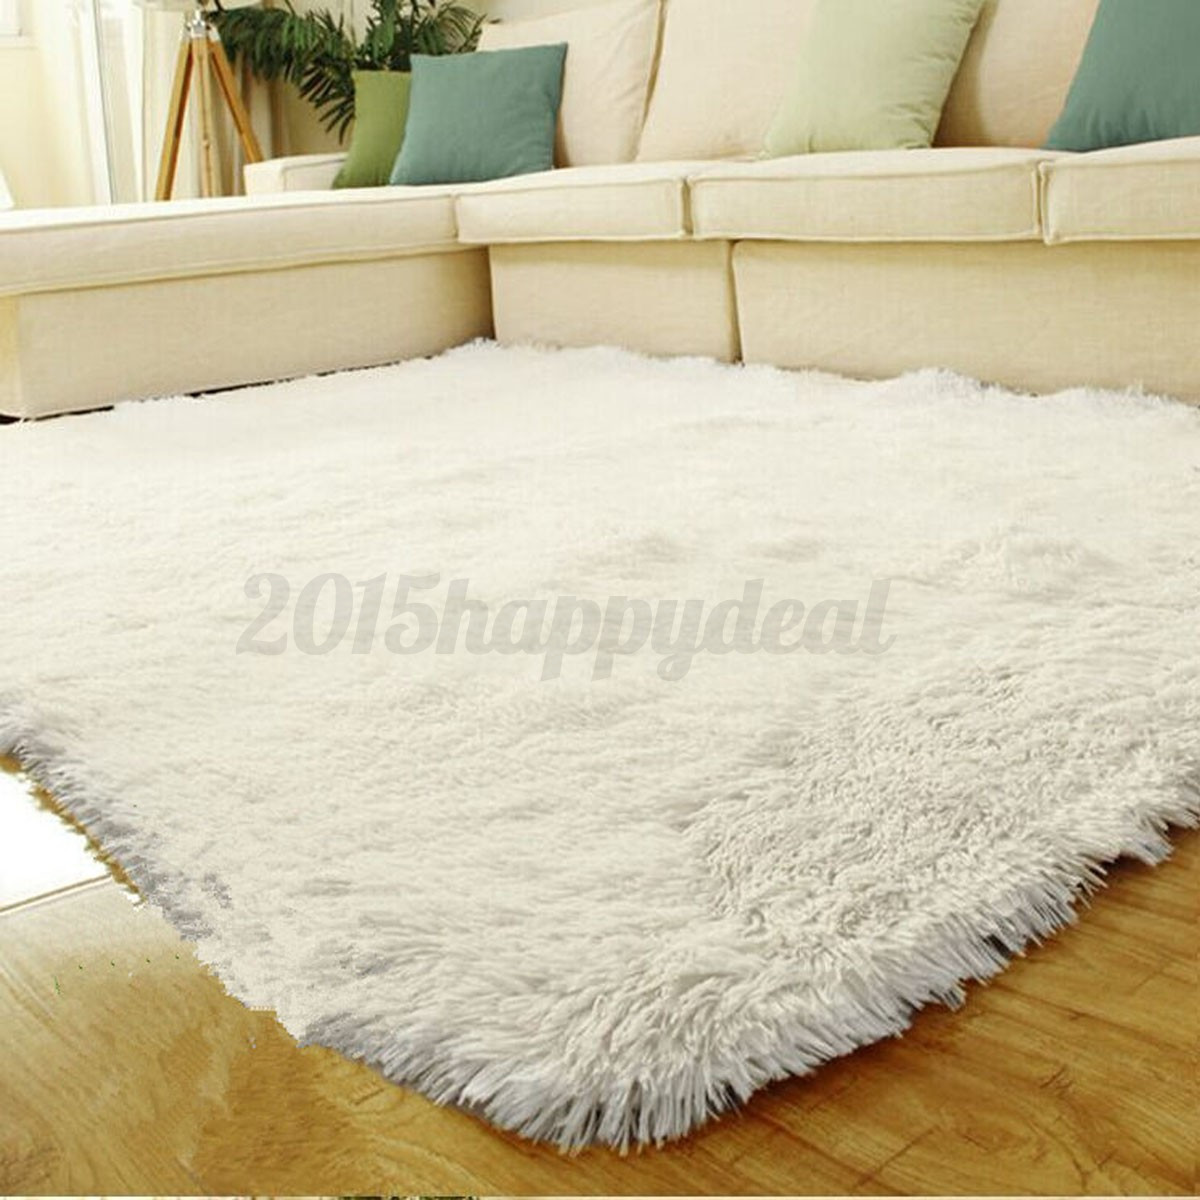 Fluffy Antiskid Shaggy Area Rug Carpet Home Bedroom Floor Room Mat 14070cm UK  eBay